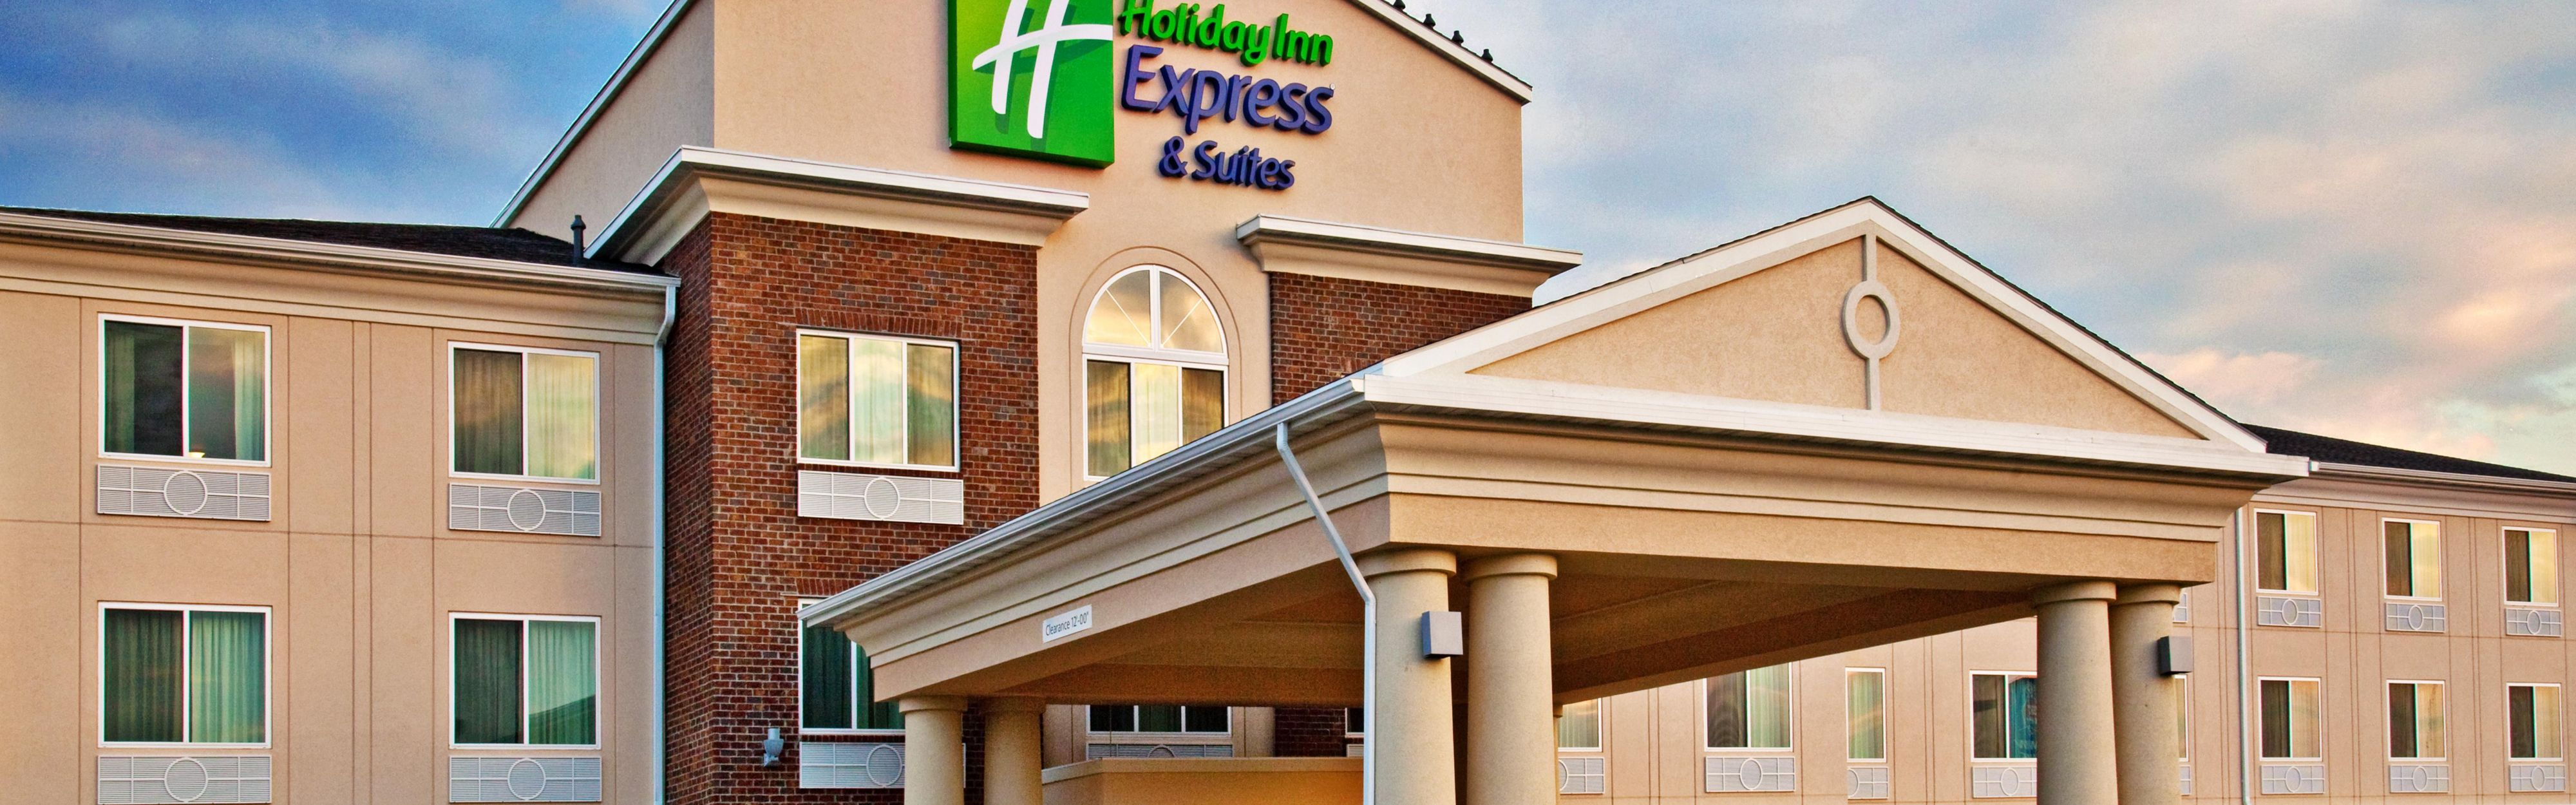 Holiday inn express coupon codes